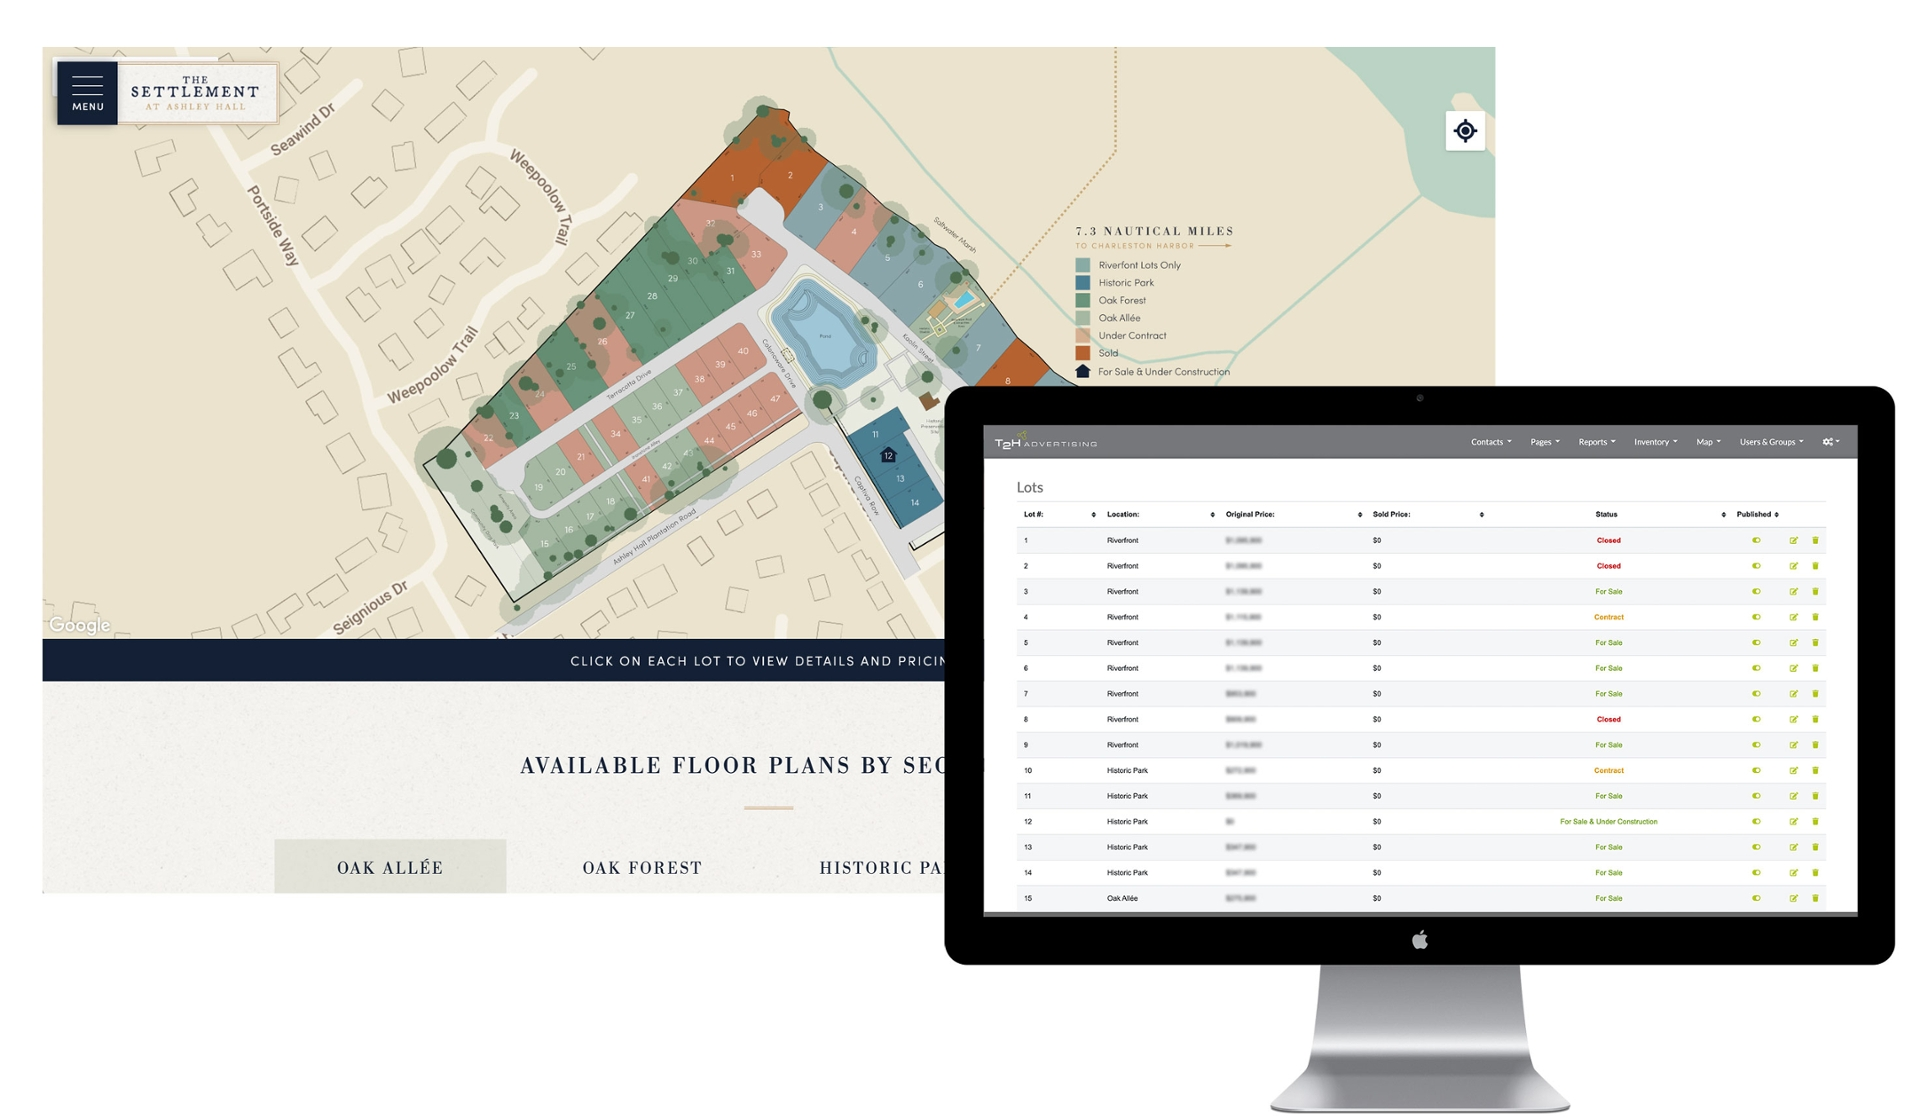 Lot / Home Inventory System